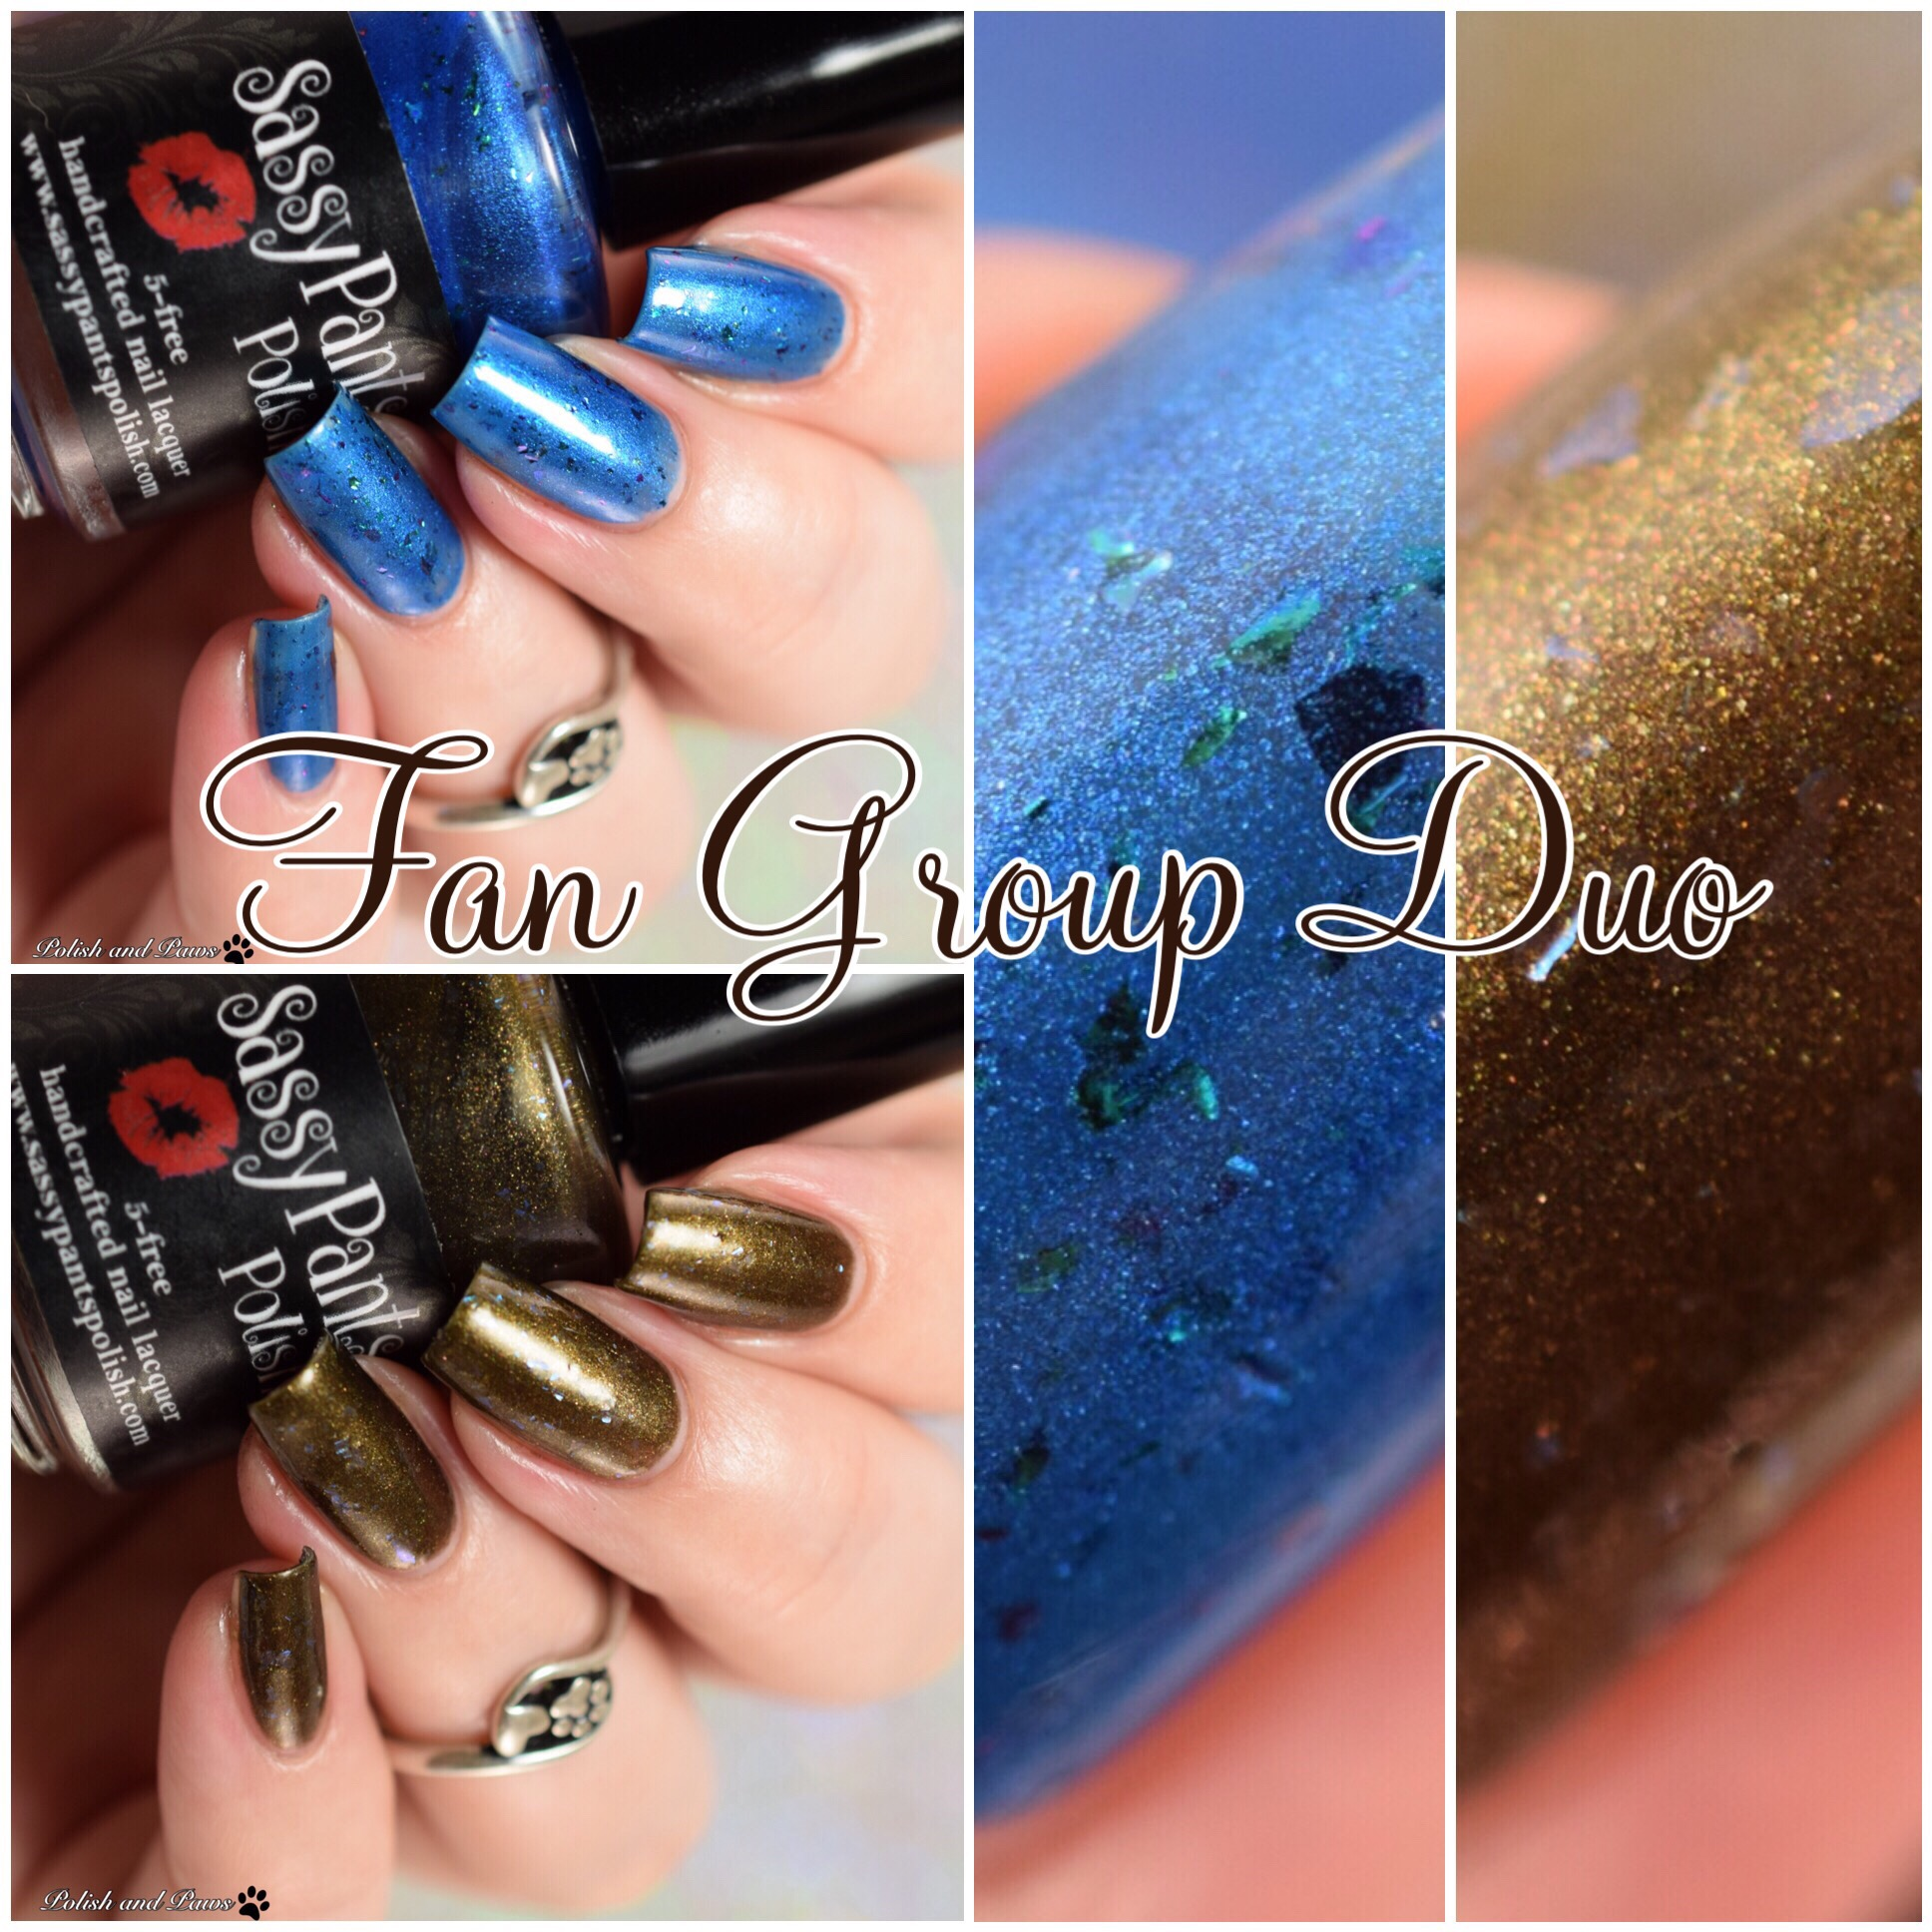 Sassy Pants Polish Fan Group Duo